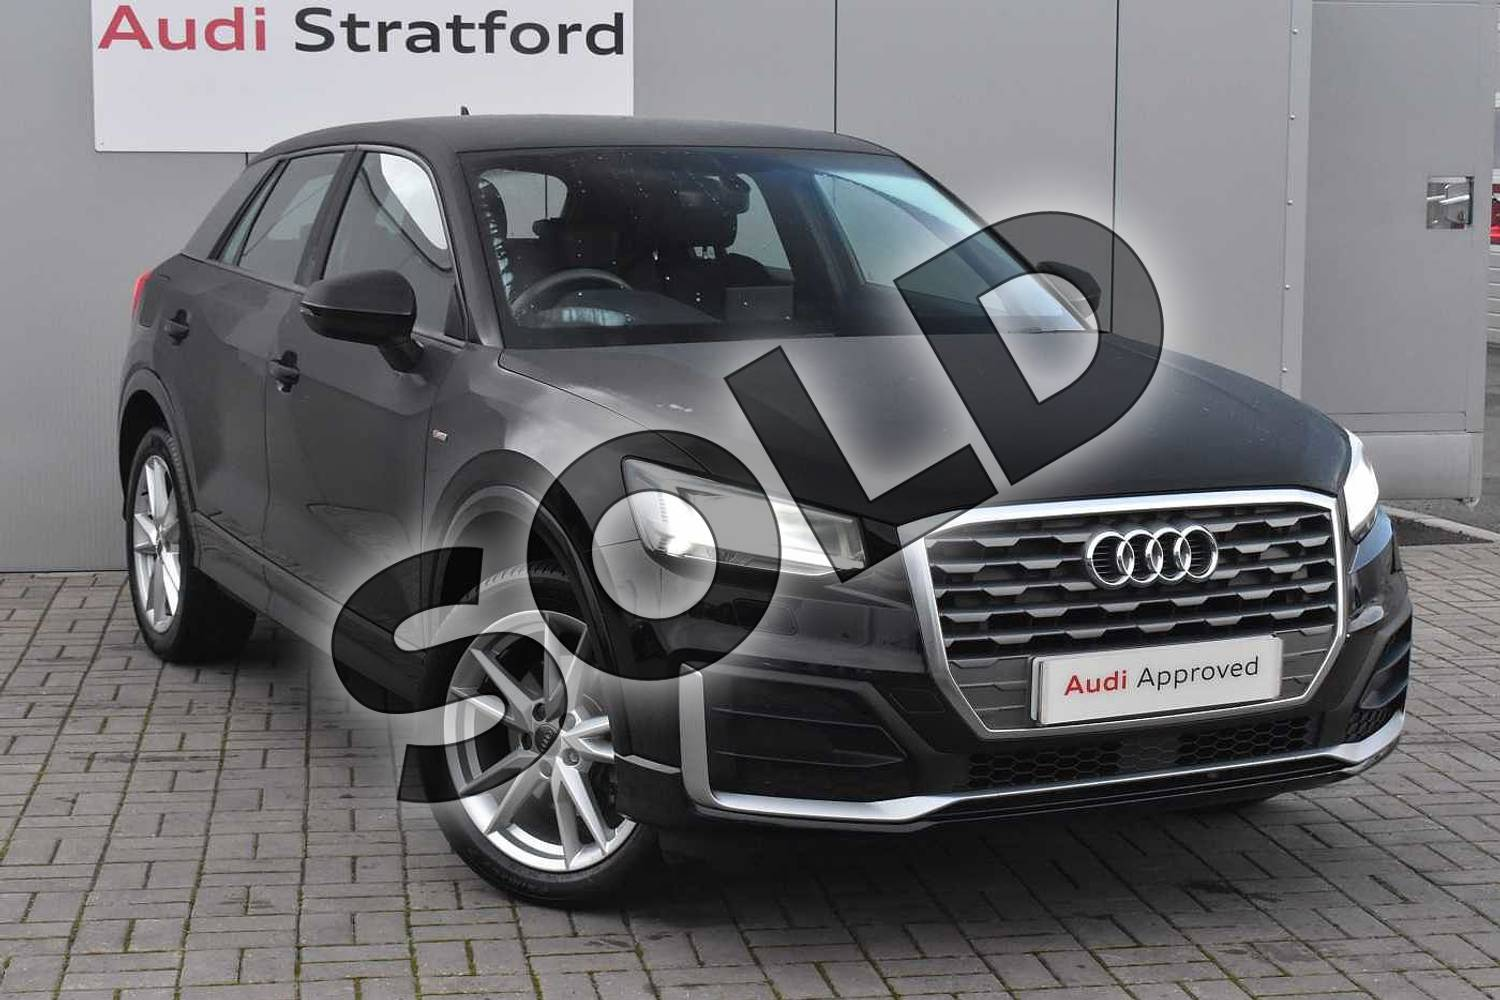 2018 Audi Q2 Diesel Estate 30 TDI S Line 5dr in Myth Black Metallic at Stratford Audi